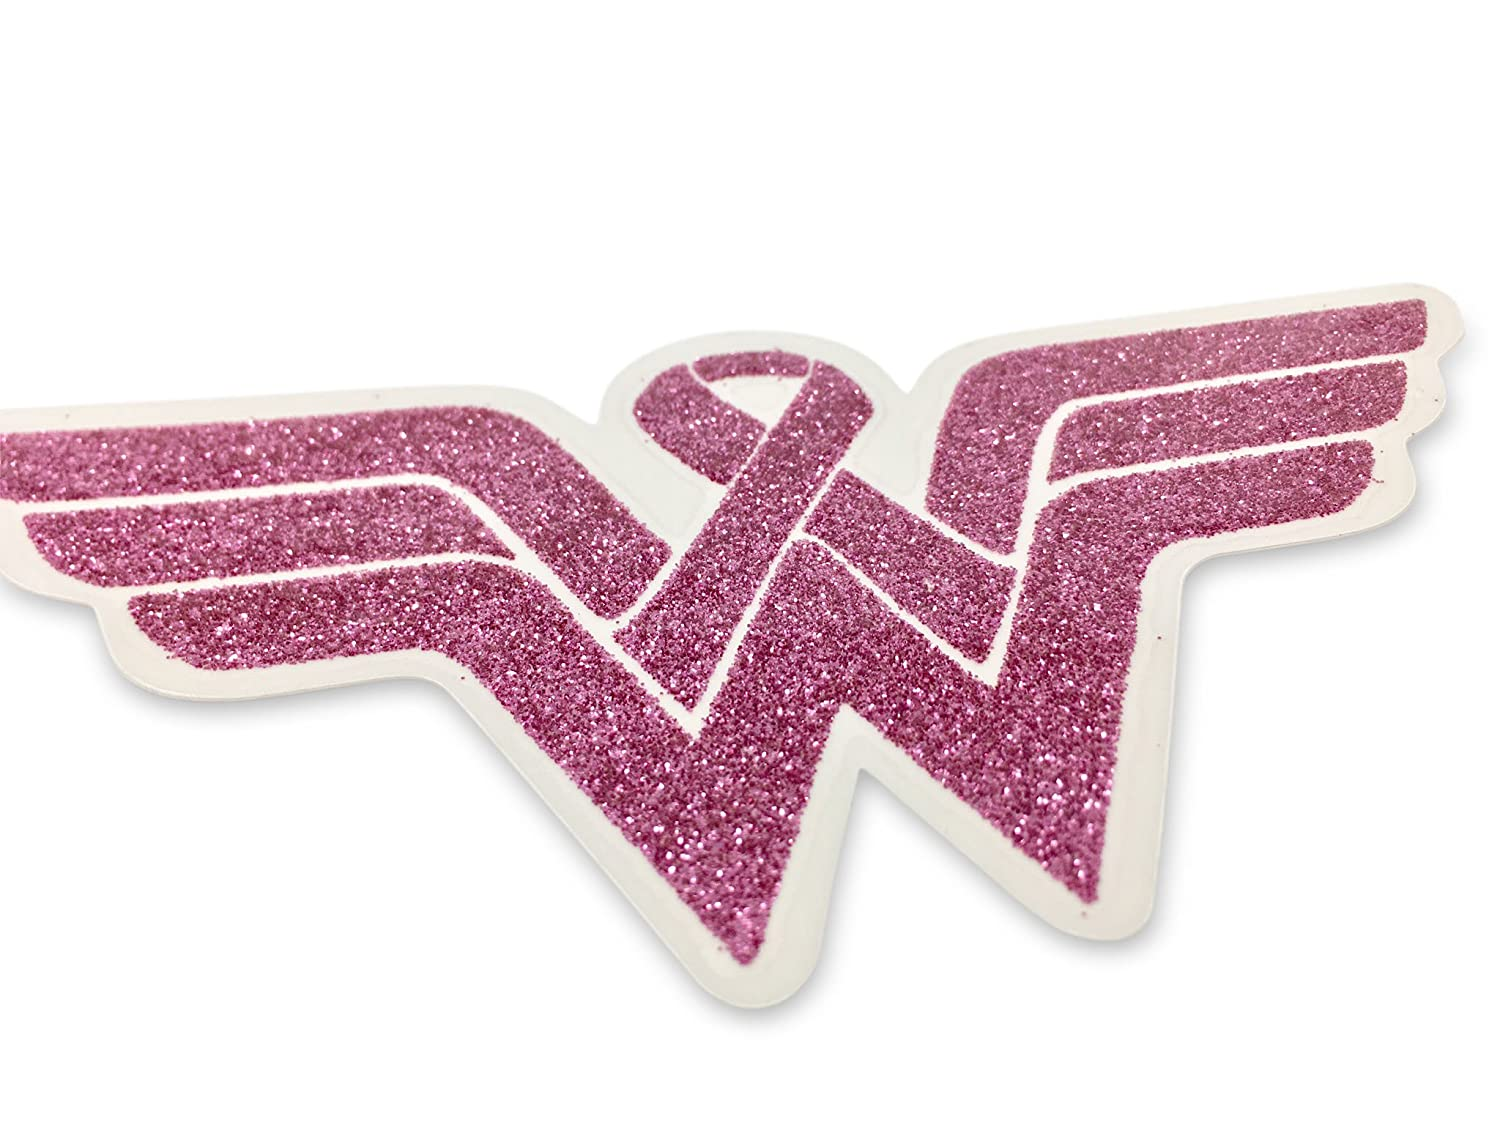 Wonder Woman Breast Cancer Awareness Decal. Show your support and strenght with this Beautiful Glitter Covered Clear Viny sticker. Display this for yourself or someone you love. Fight Back!!! Blueline WonderWoman7